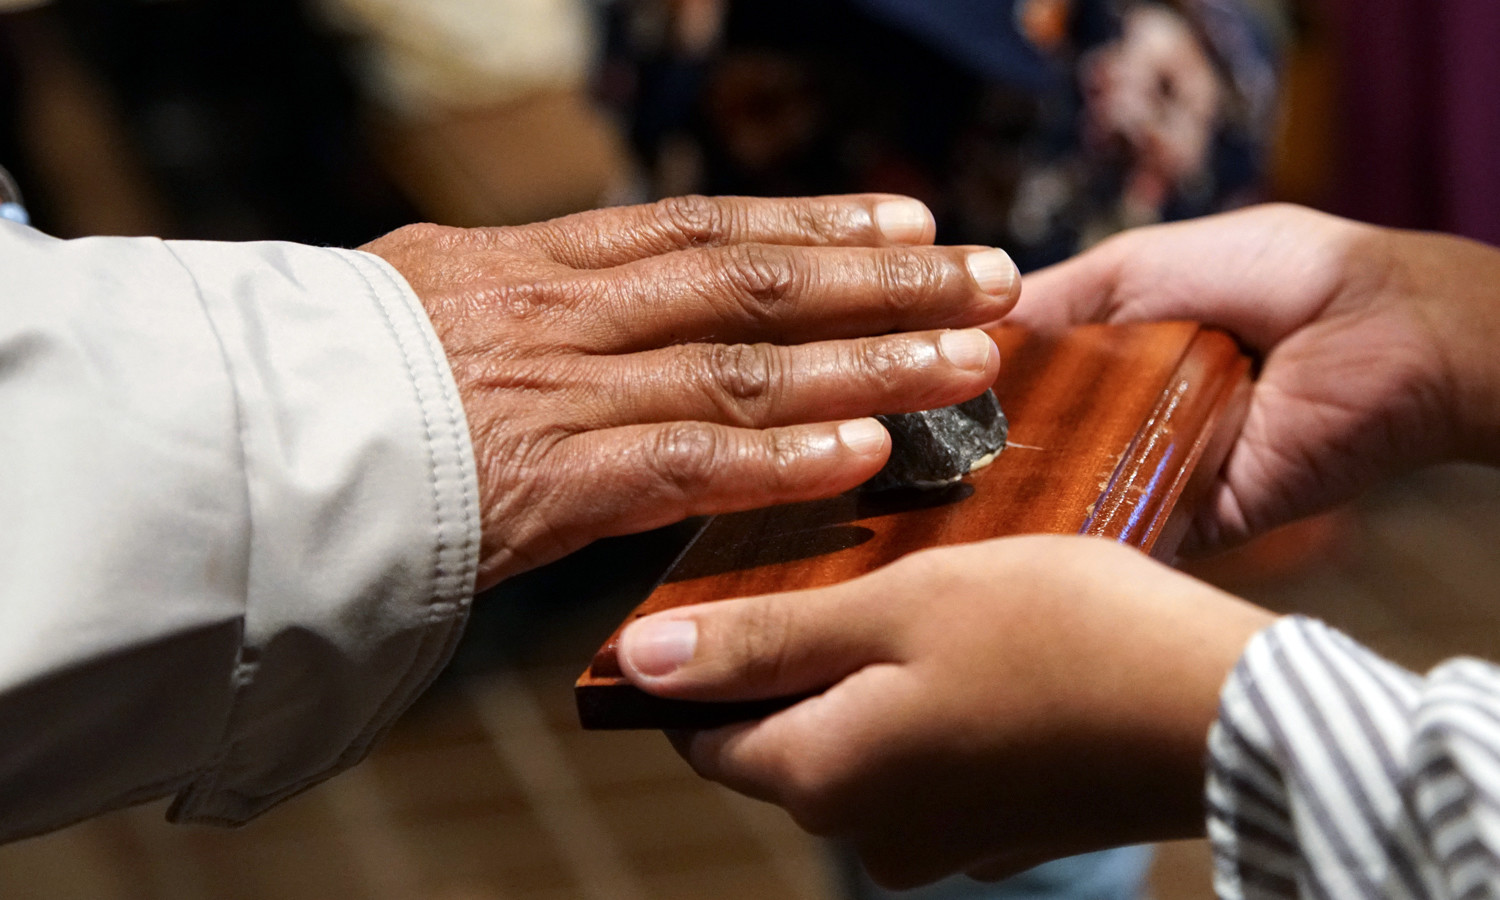 Parishioners touch the grotto relics.